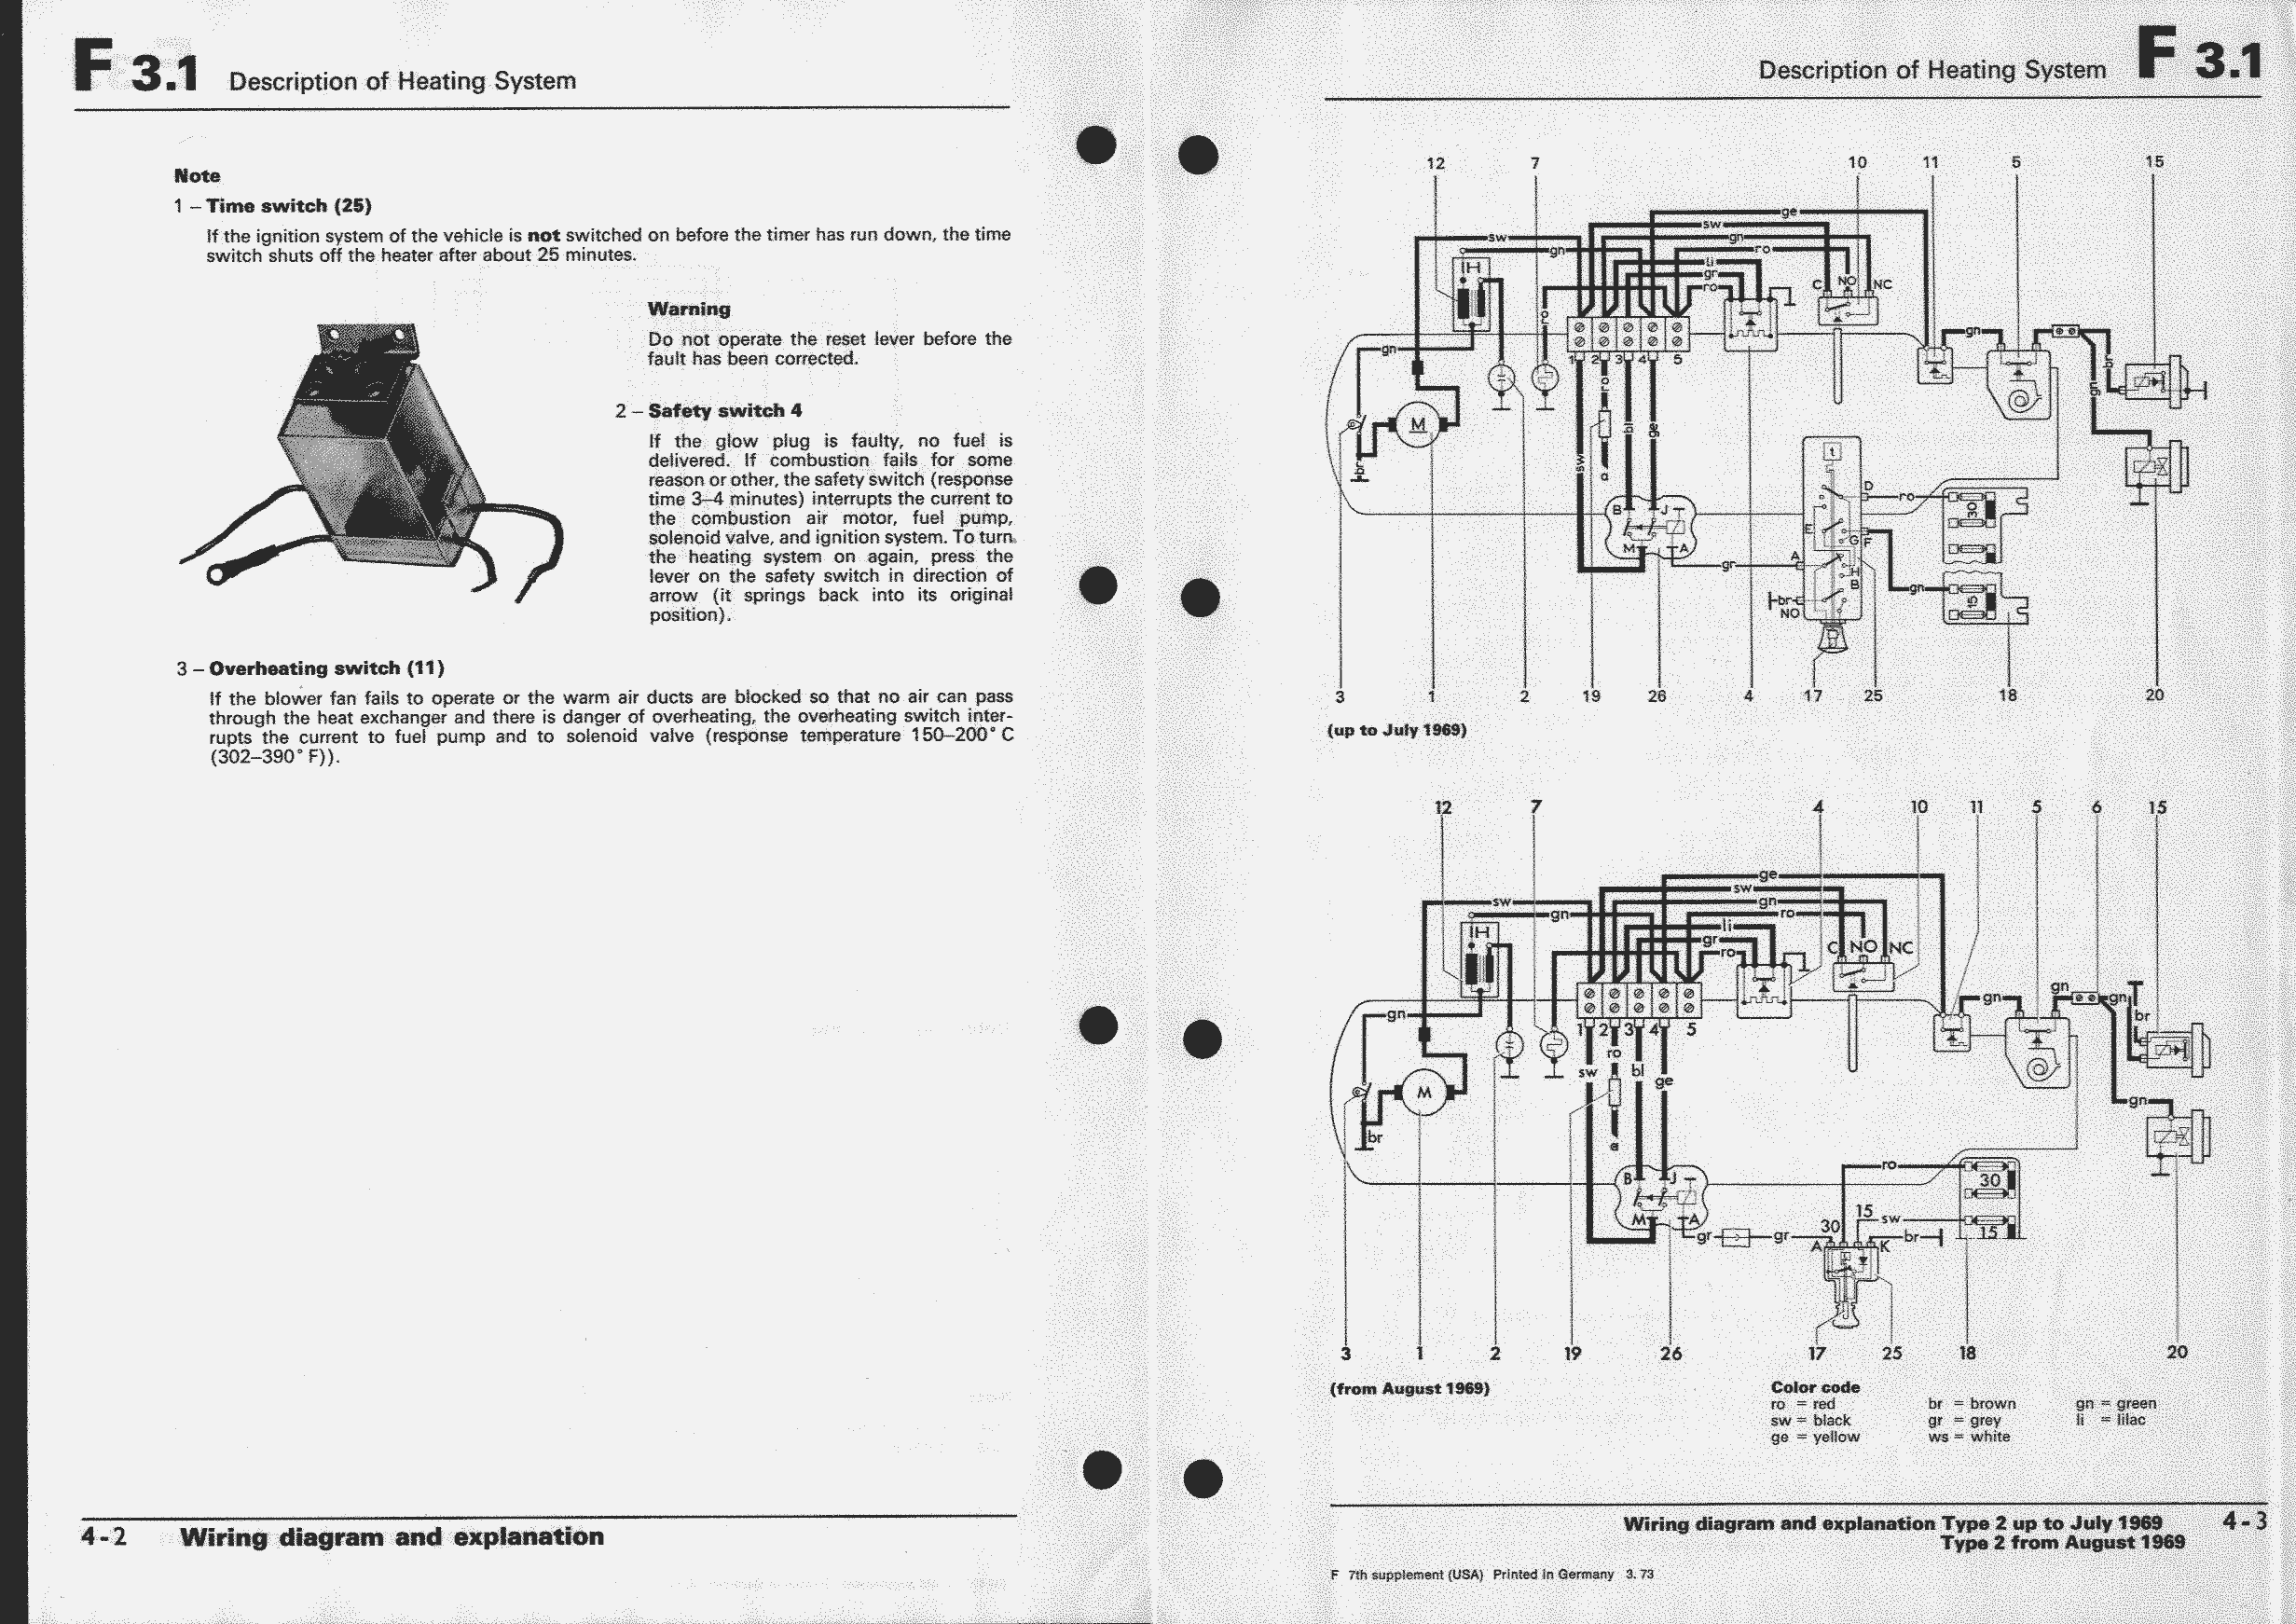 Obsolete Air Cooled Documentation Project Vw Workshop Manual Heat Combustion Engine Diagram Types 2 And 181